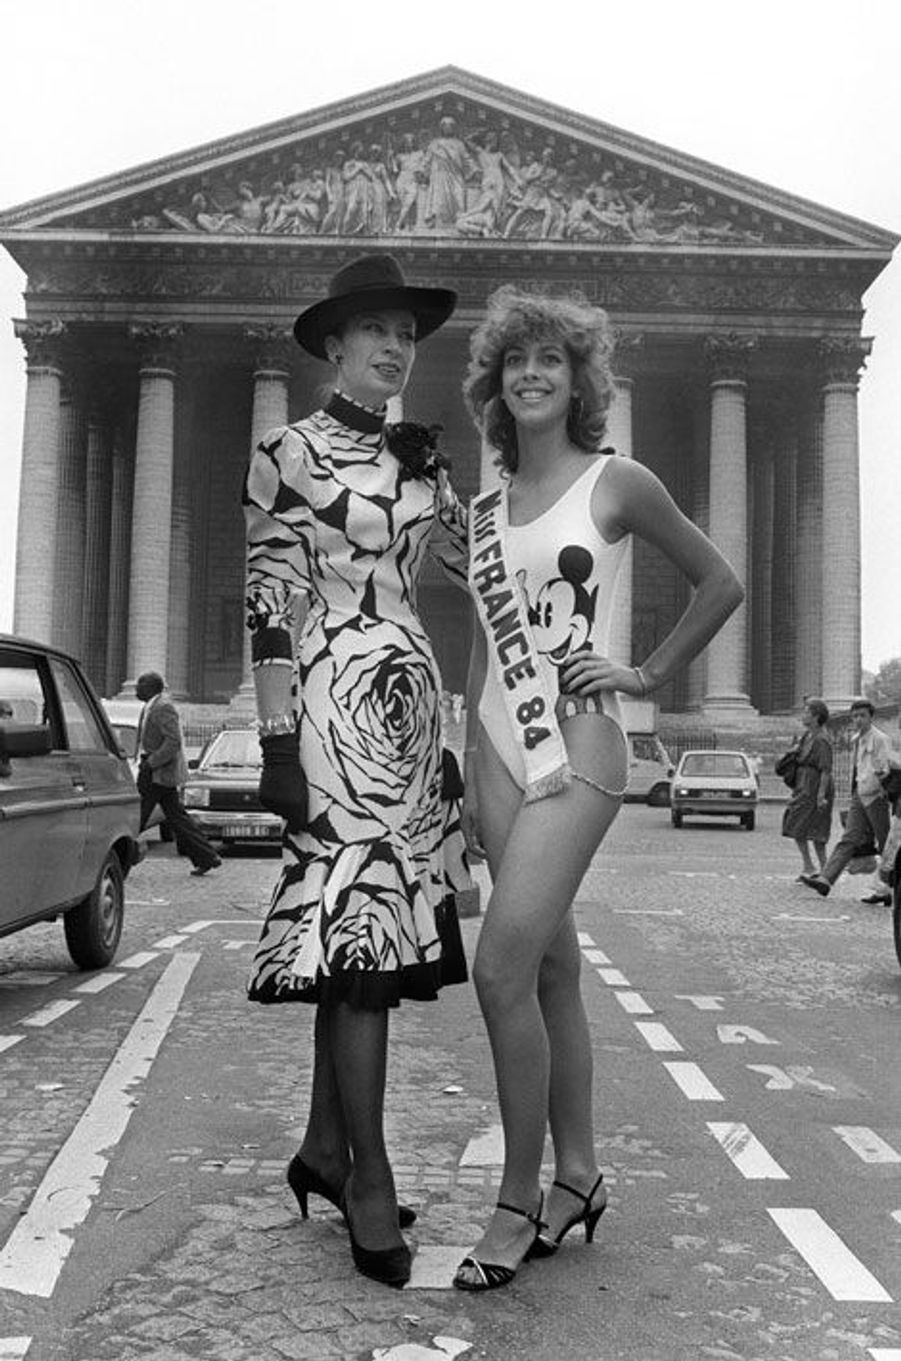 Avec Miss France 1984 Martine Robine